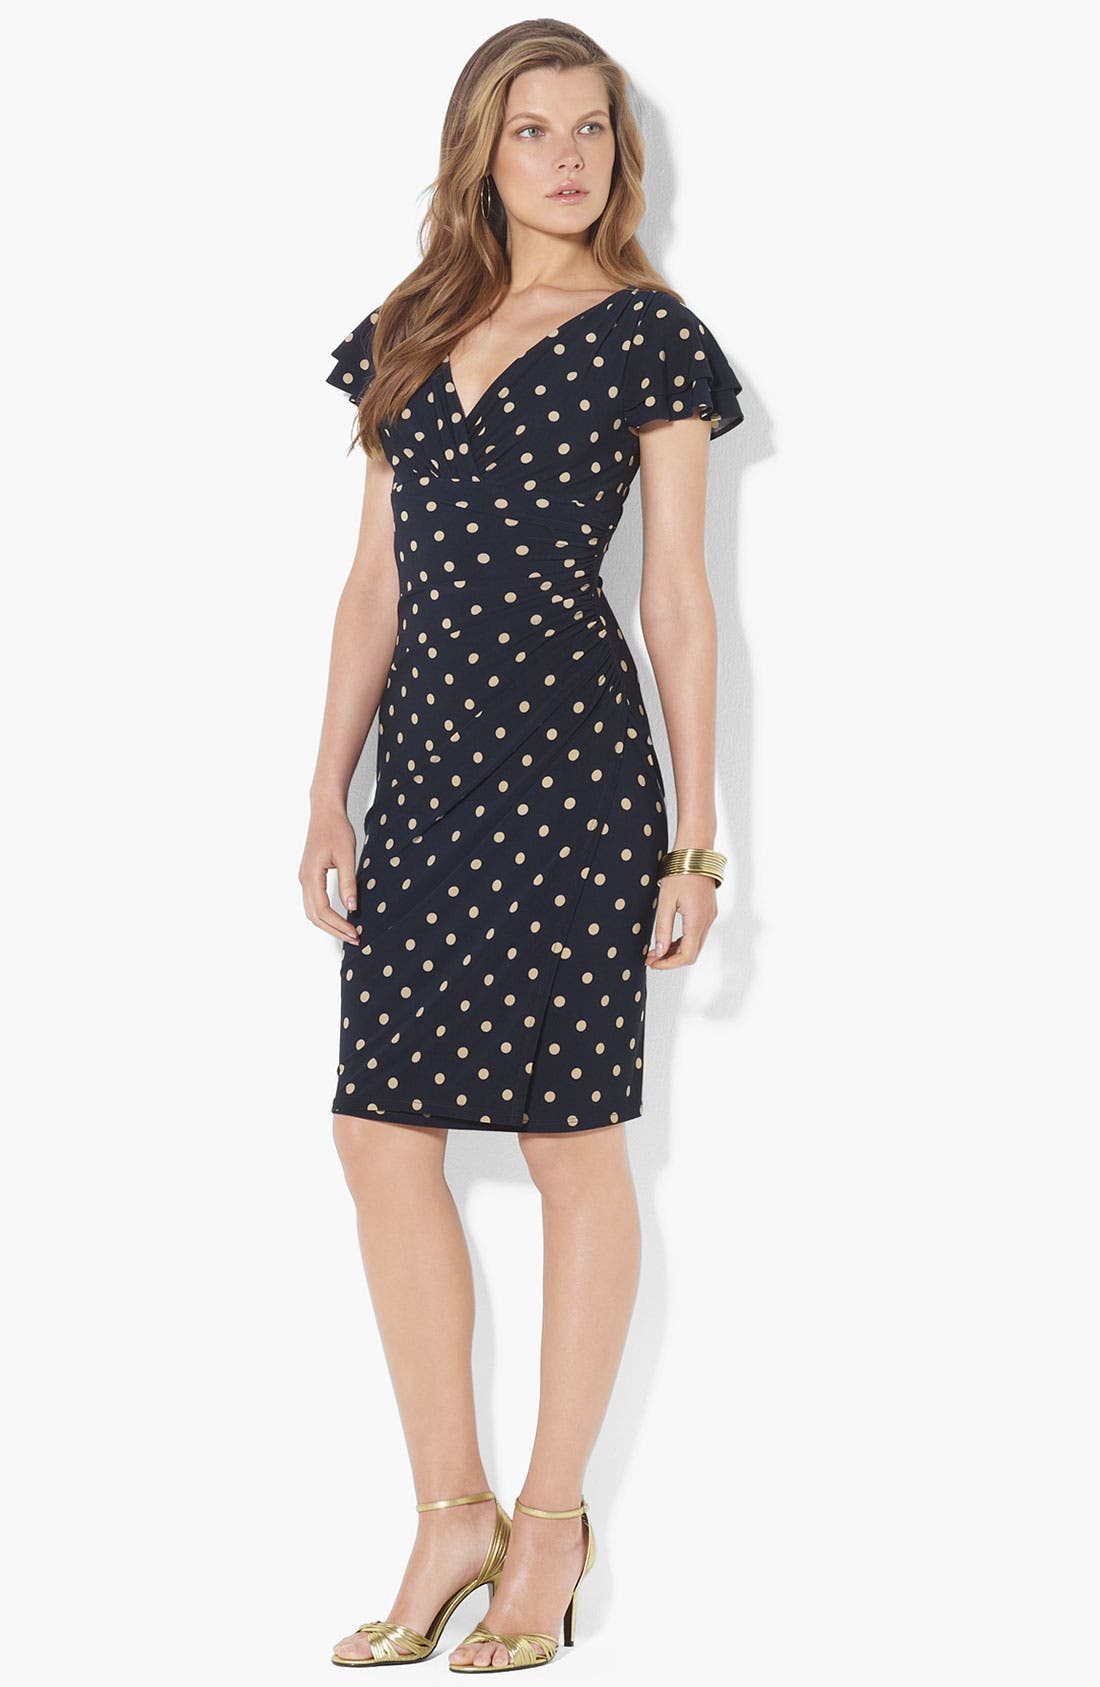 Alternate Image 1 Selected - Lauren Ralph Lauren Polka Dot Flutter Sleeve Jersey Dress